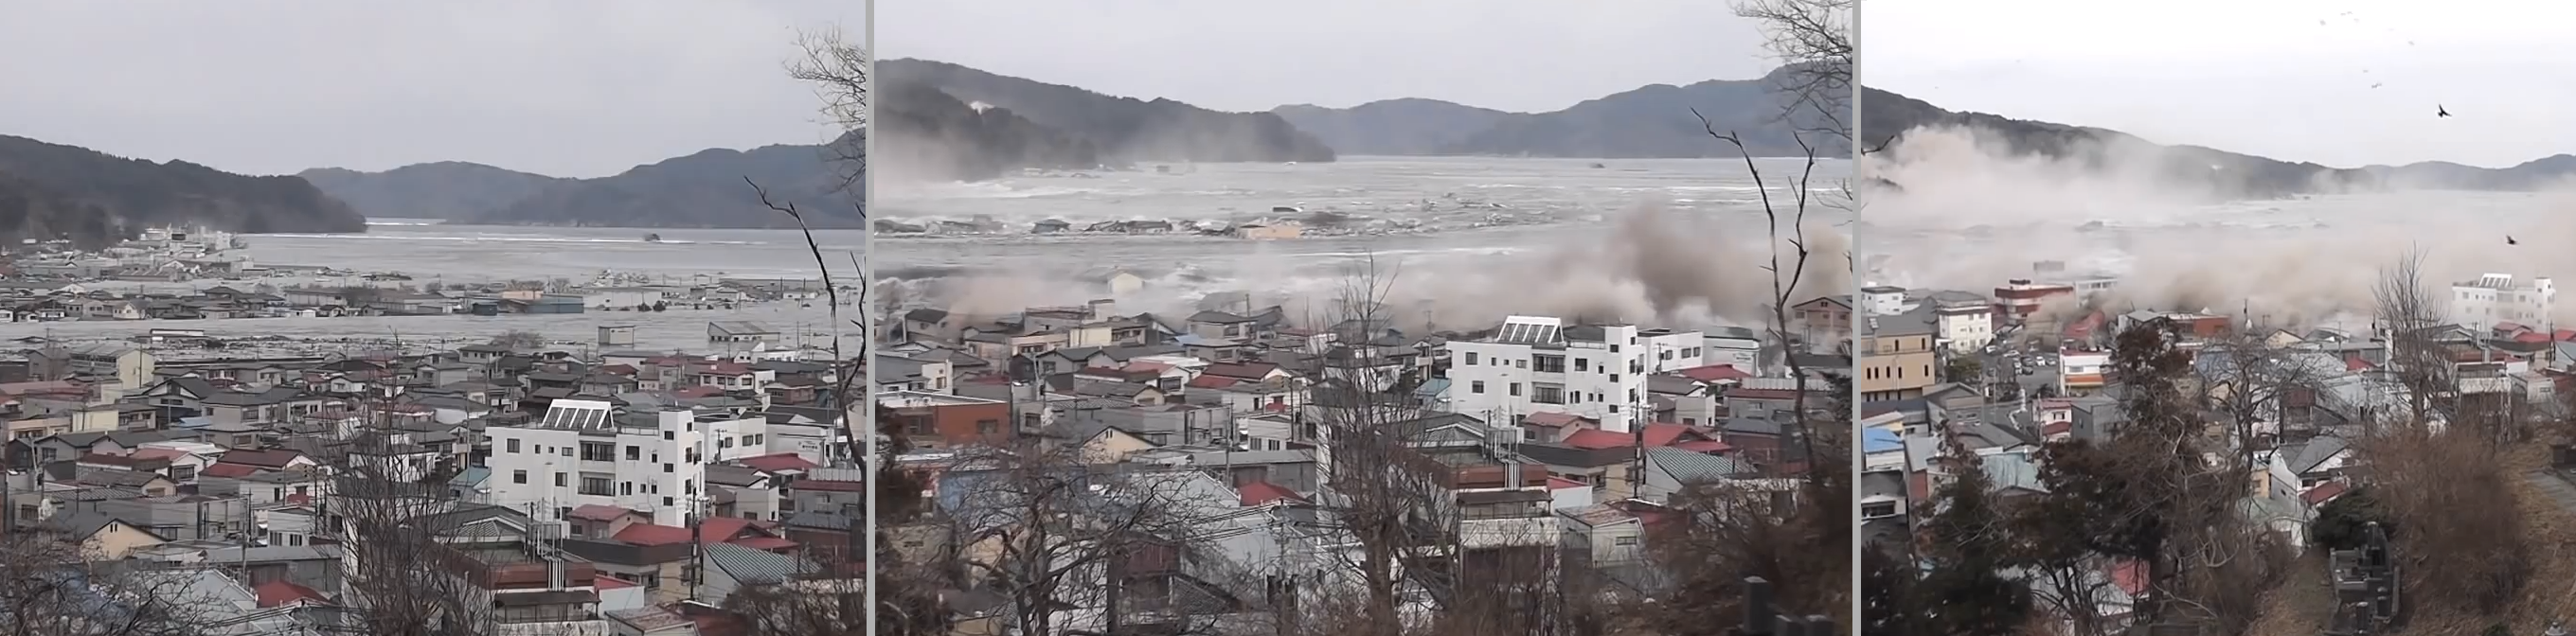 Detailed Analysis of the 2011 Japan Tsunami – Video Footage